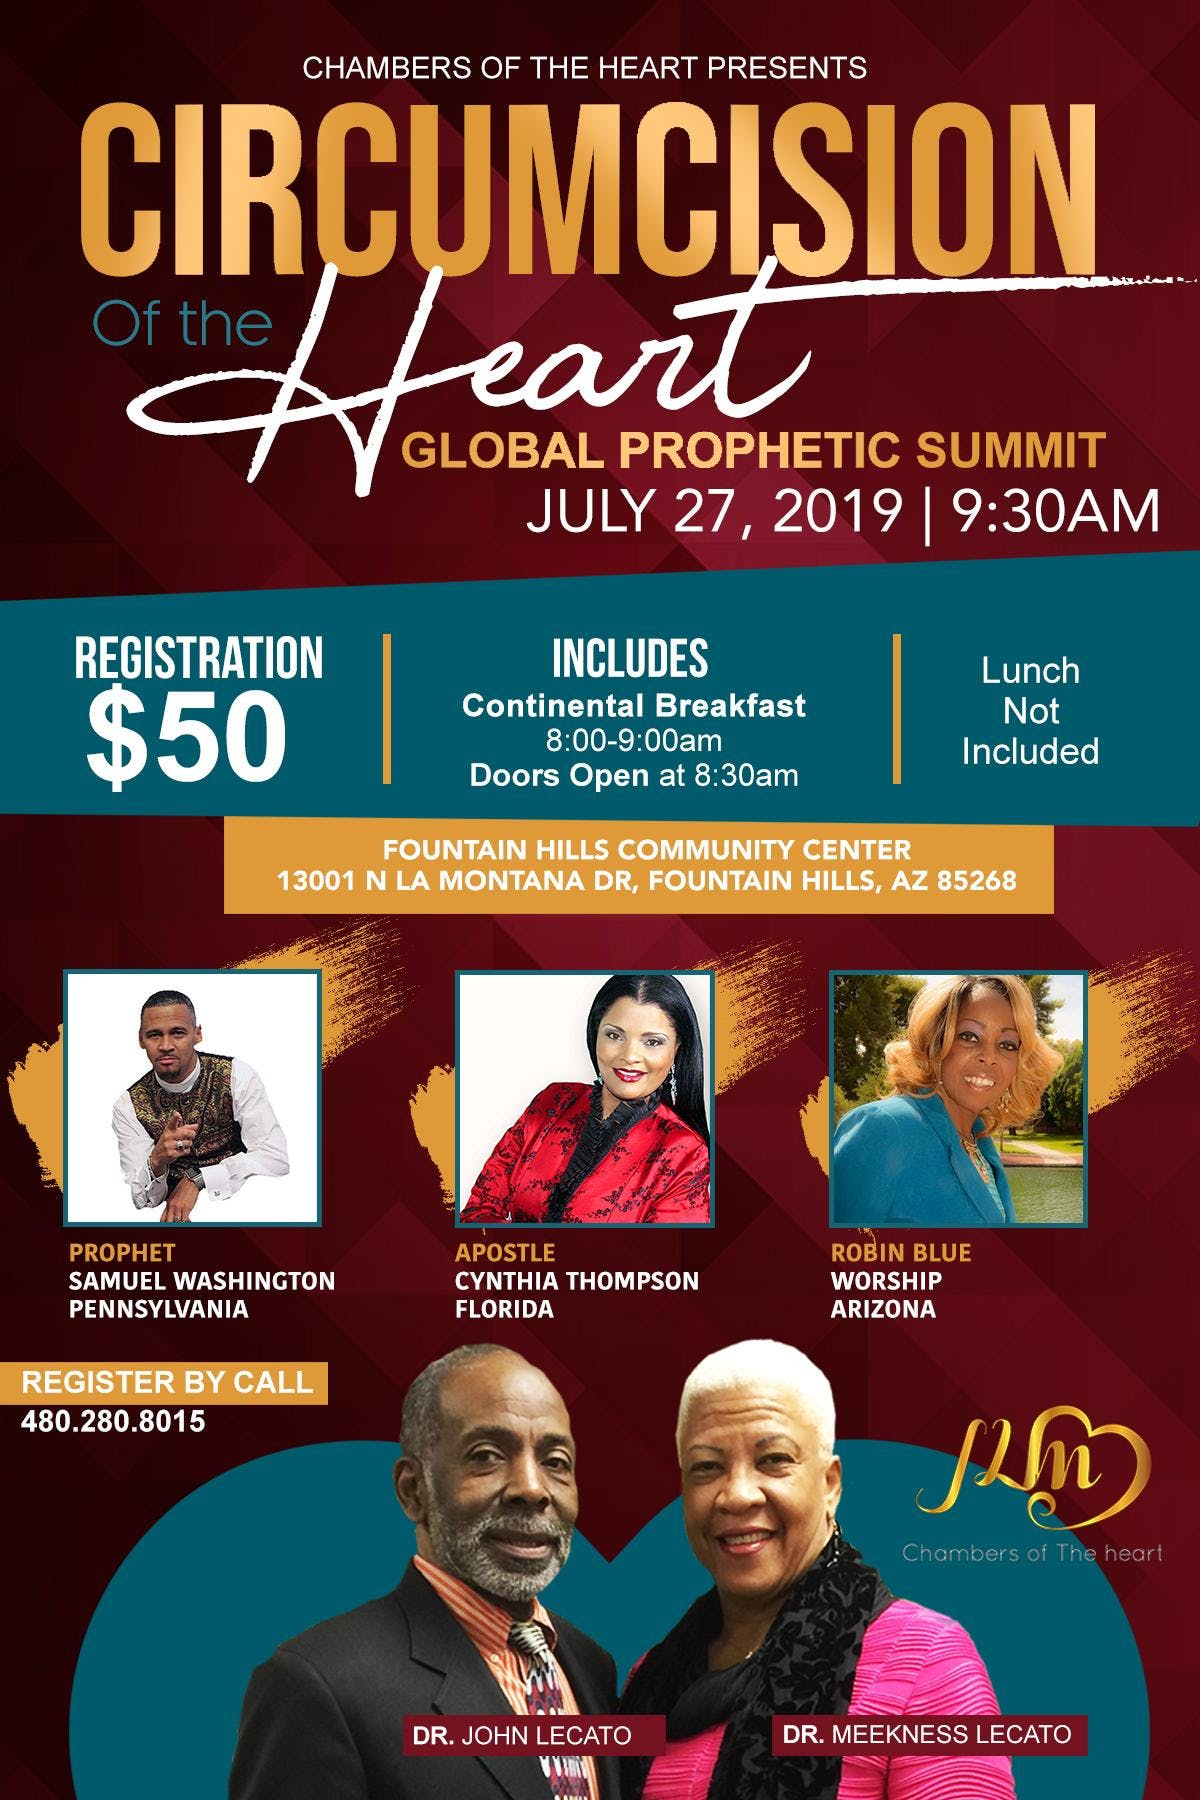 Circumcision of the Heart Global Prophetic Summit